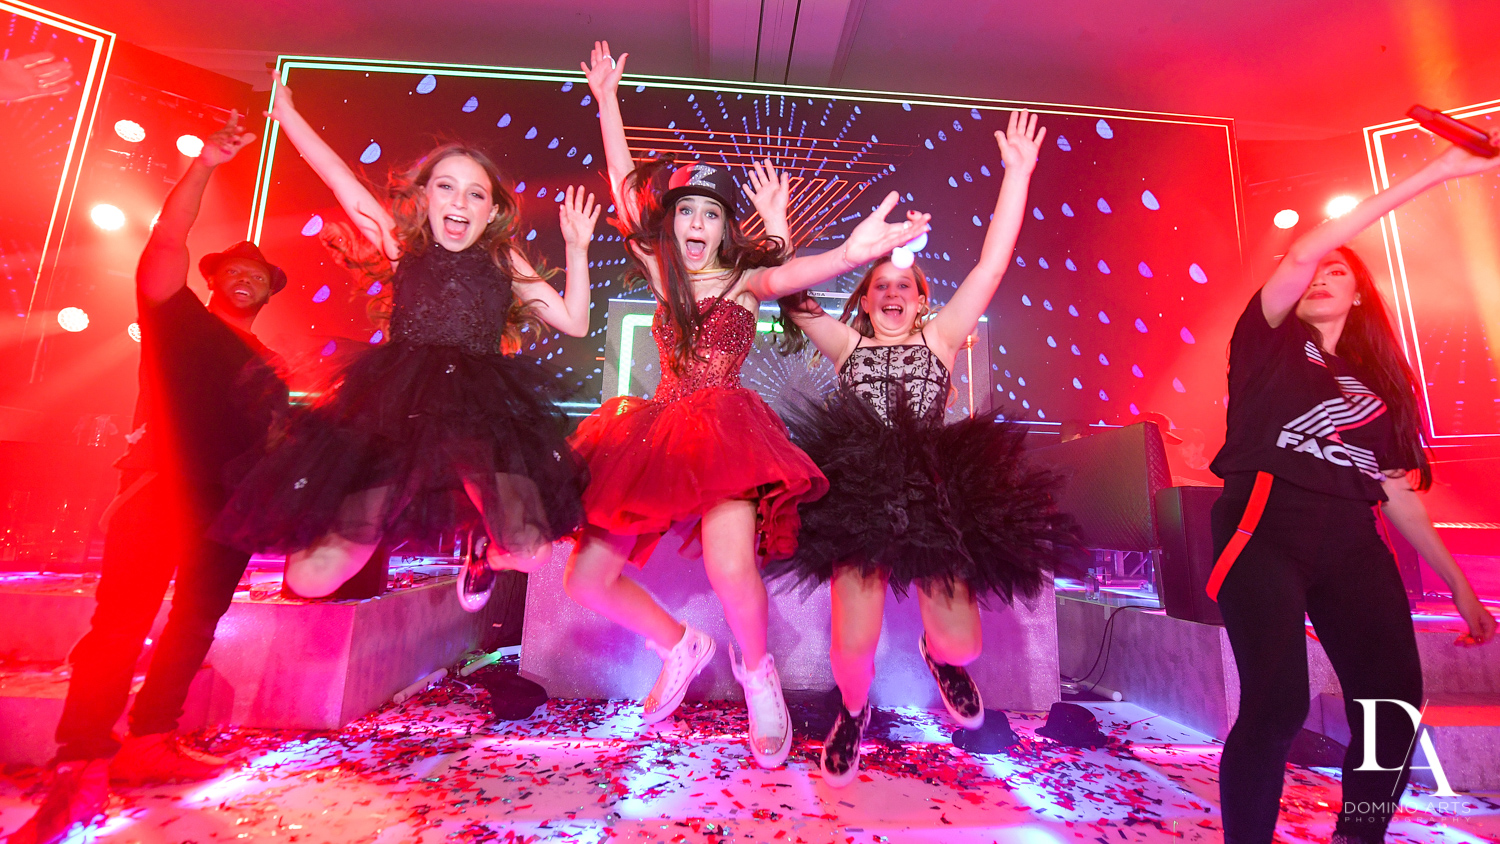 dancing fun at Luxury Celebrity Bat Mitzvah at Four Seasons Hotel Miami by Domino Arts Photography